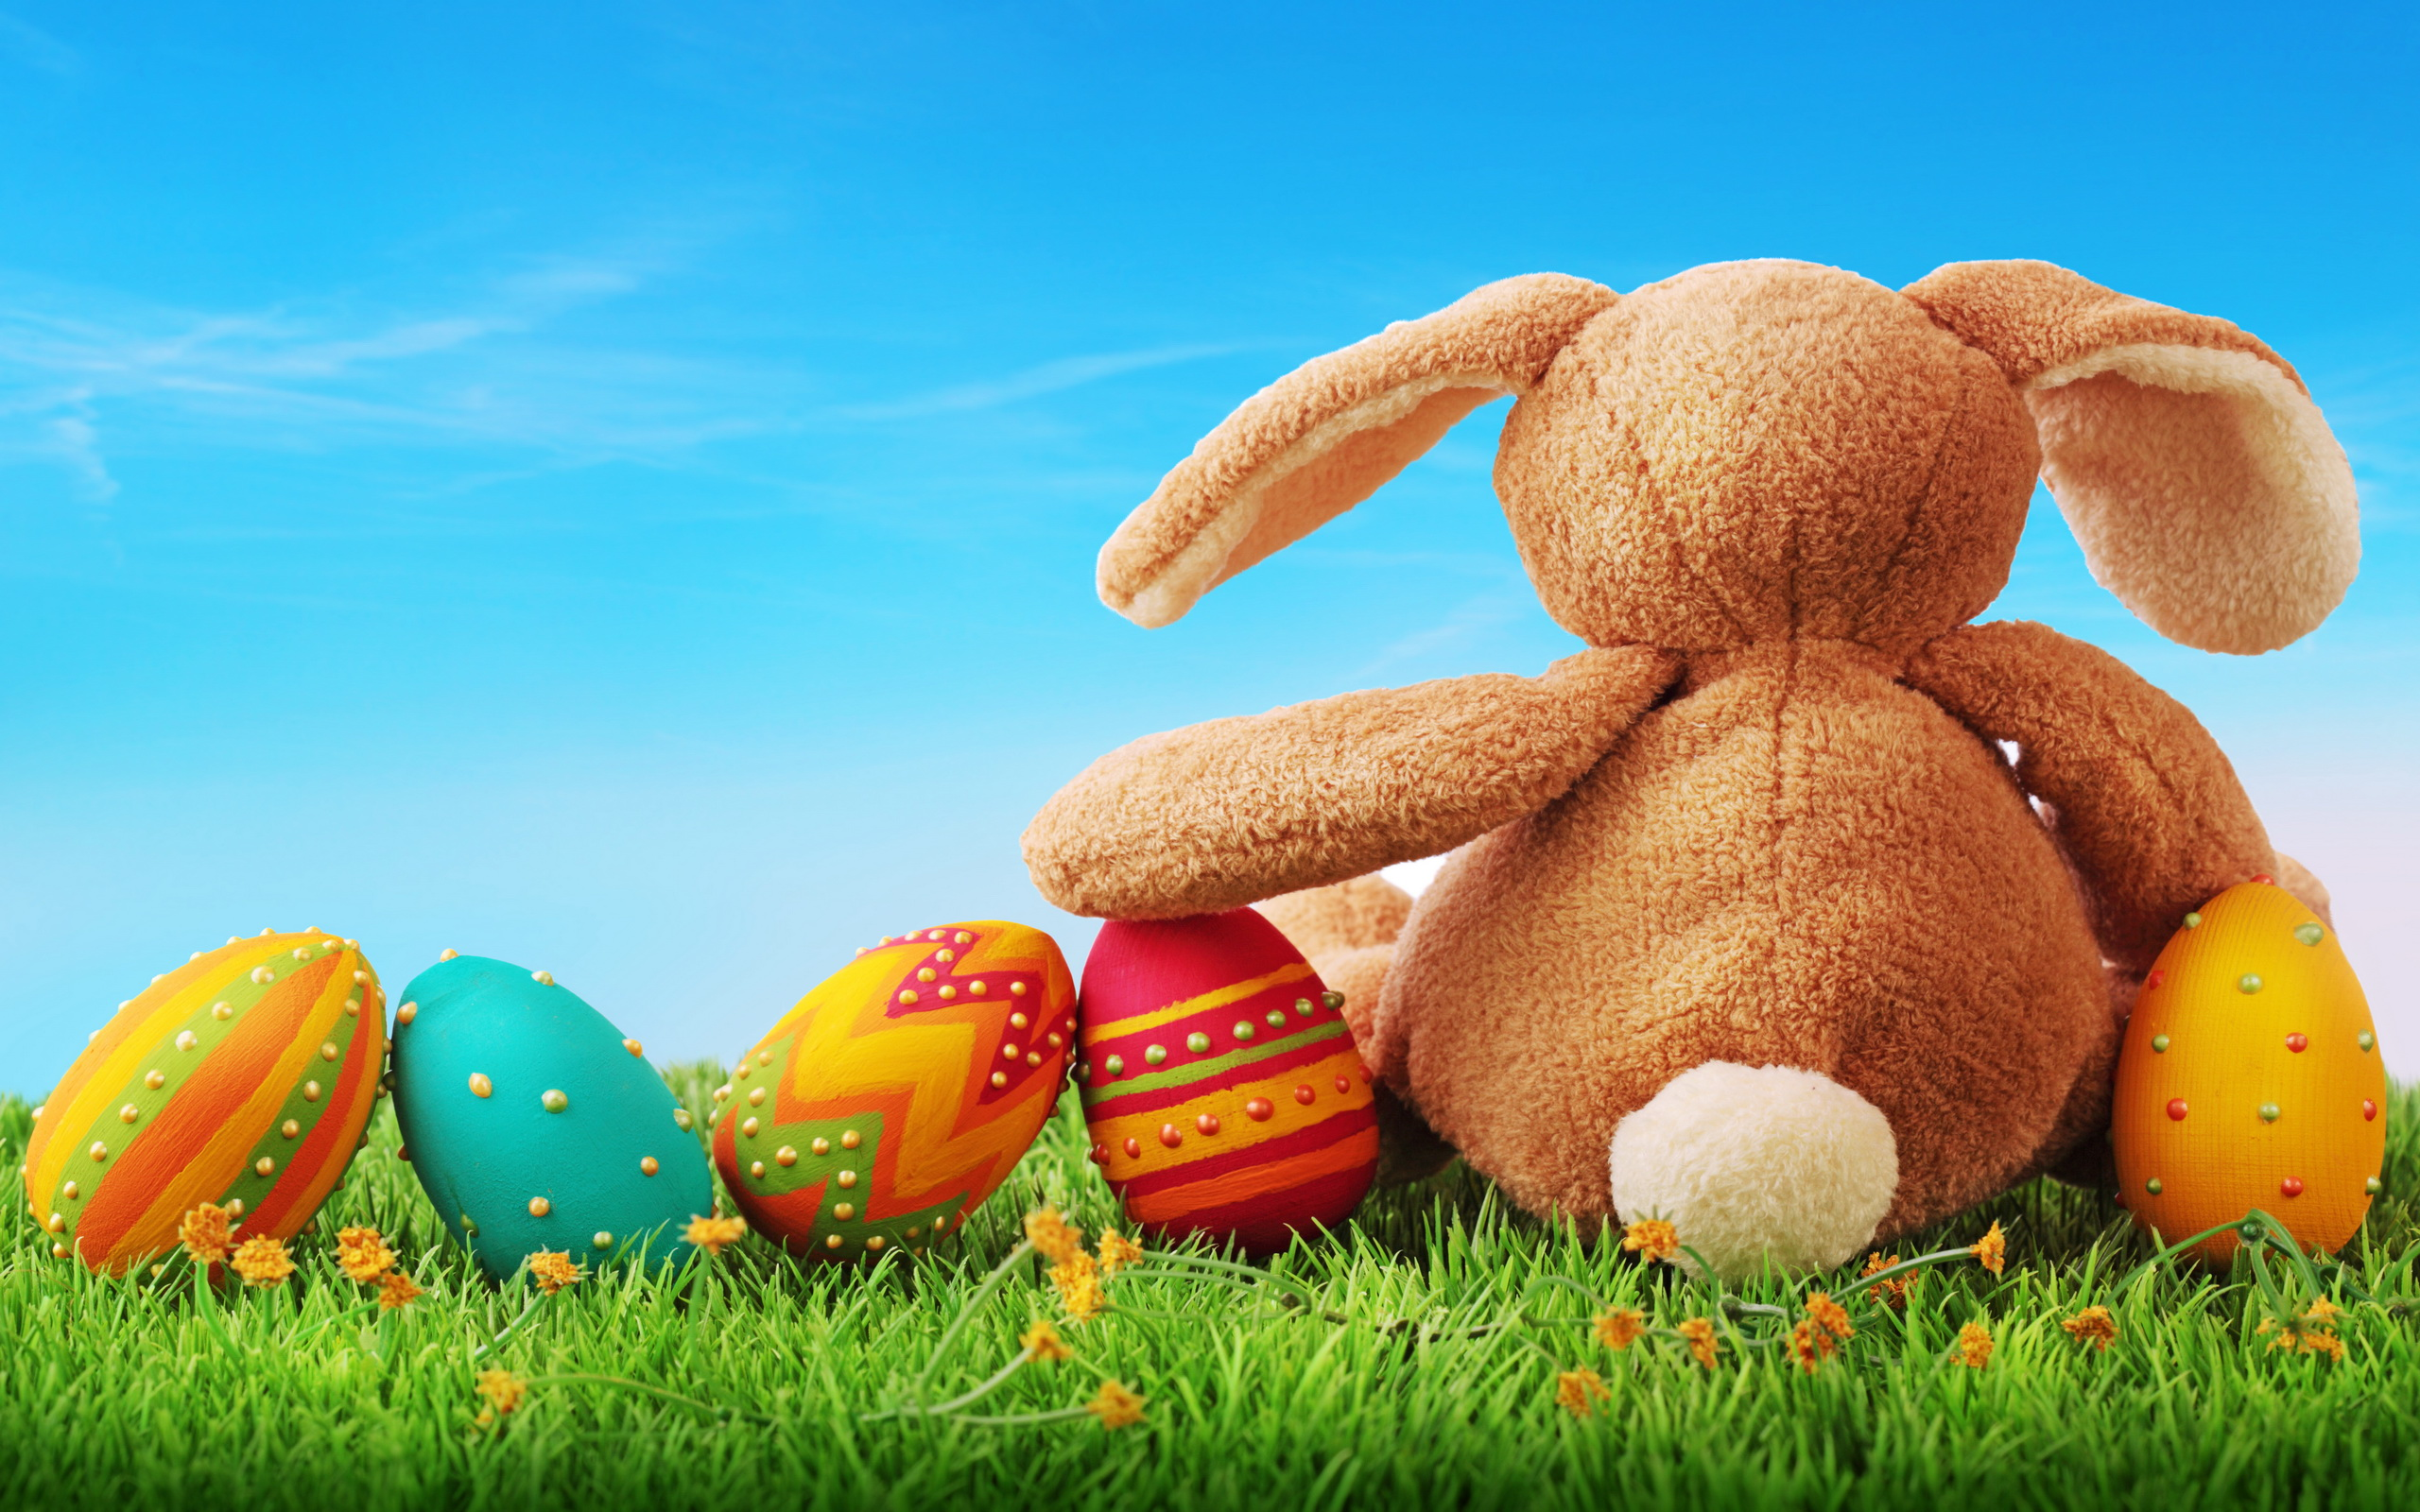 easter wallpapers hd - photo #27